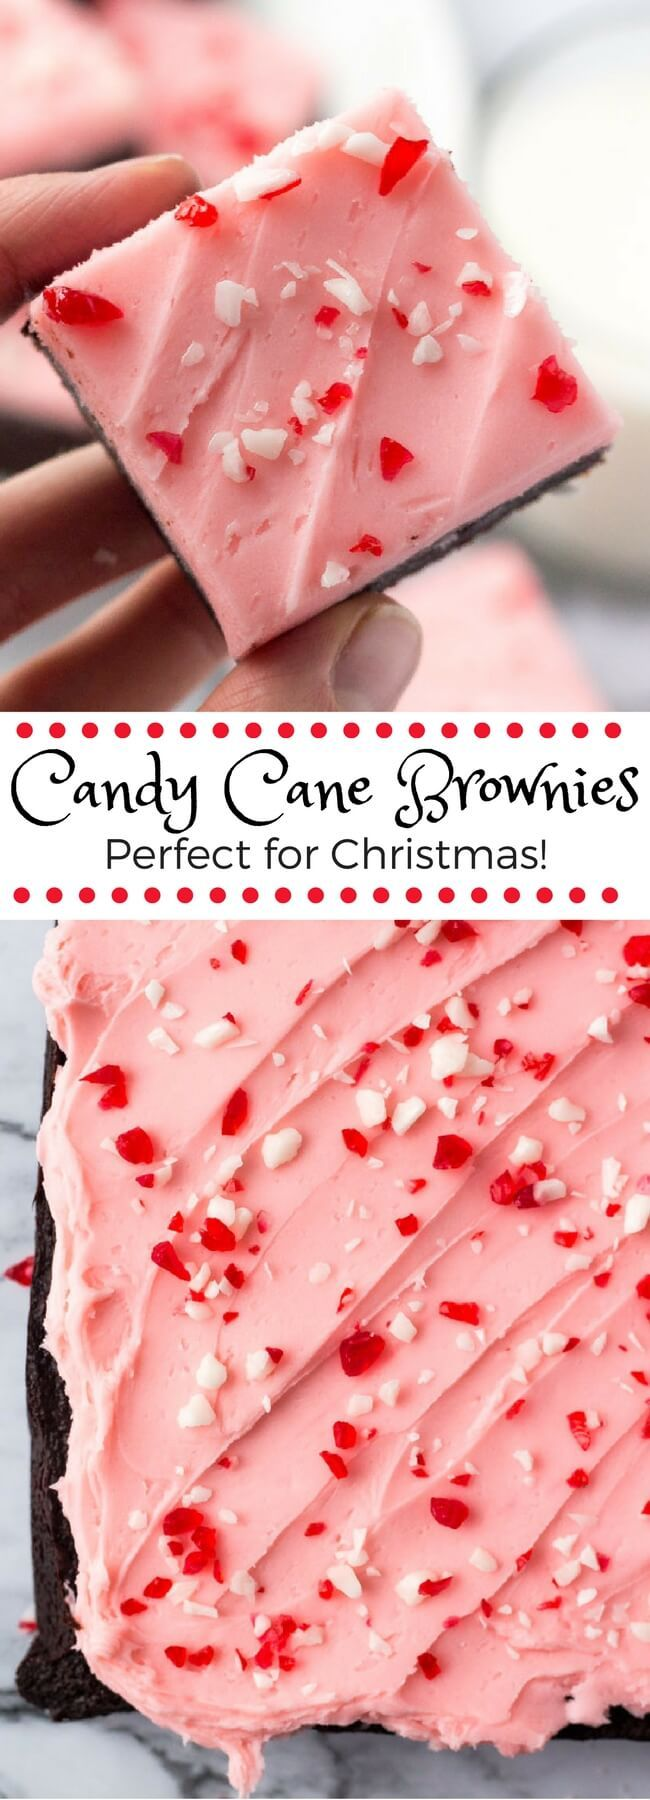 These candy cane brownies are the perfect Christmas brownies. They start with fudgy chewy brownies, then they're topped with a thick layer of creamy peppermint frosting and sprinkled with crushed candy canes.